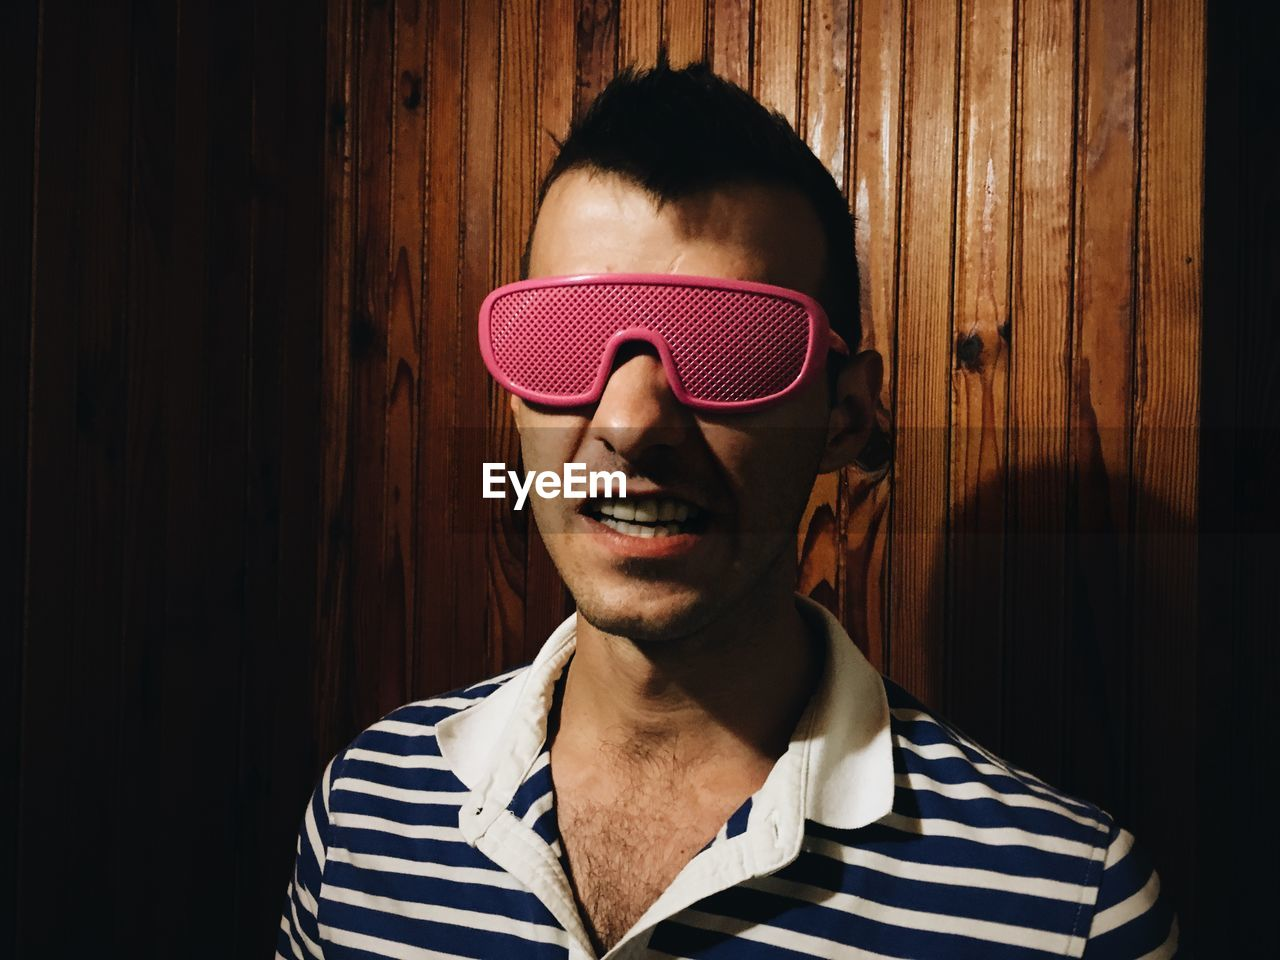 Young man wearing novelty glasses against wooden wall